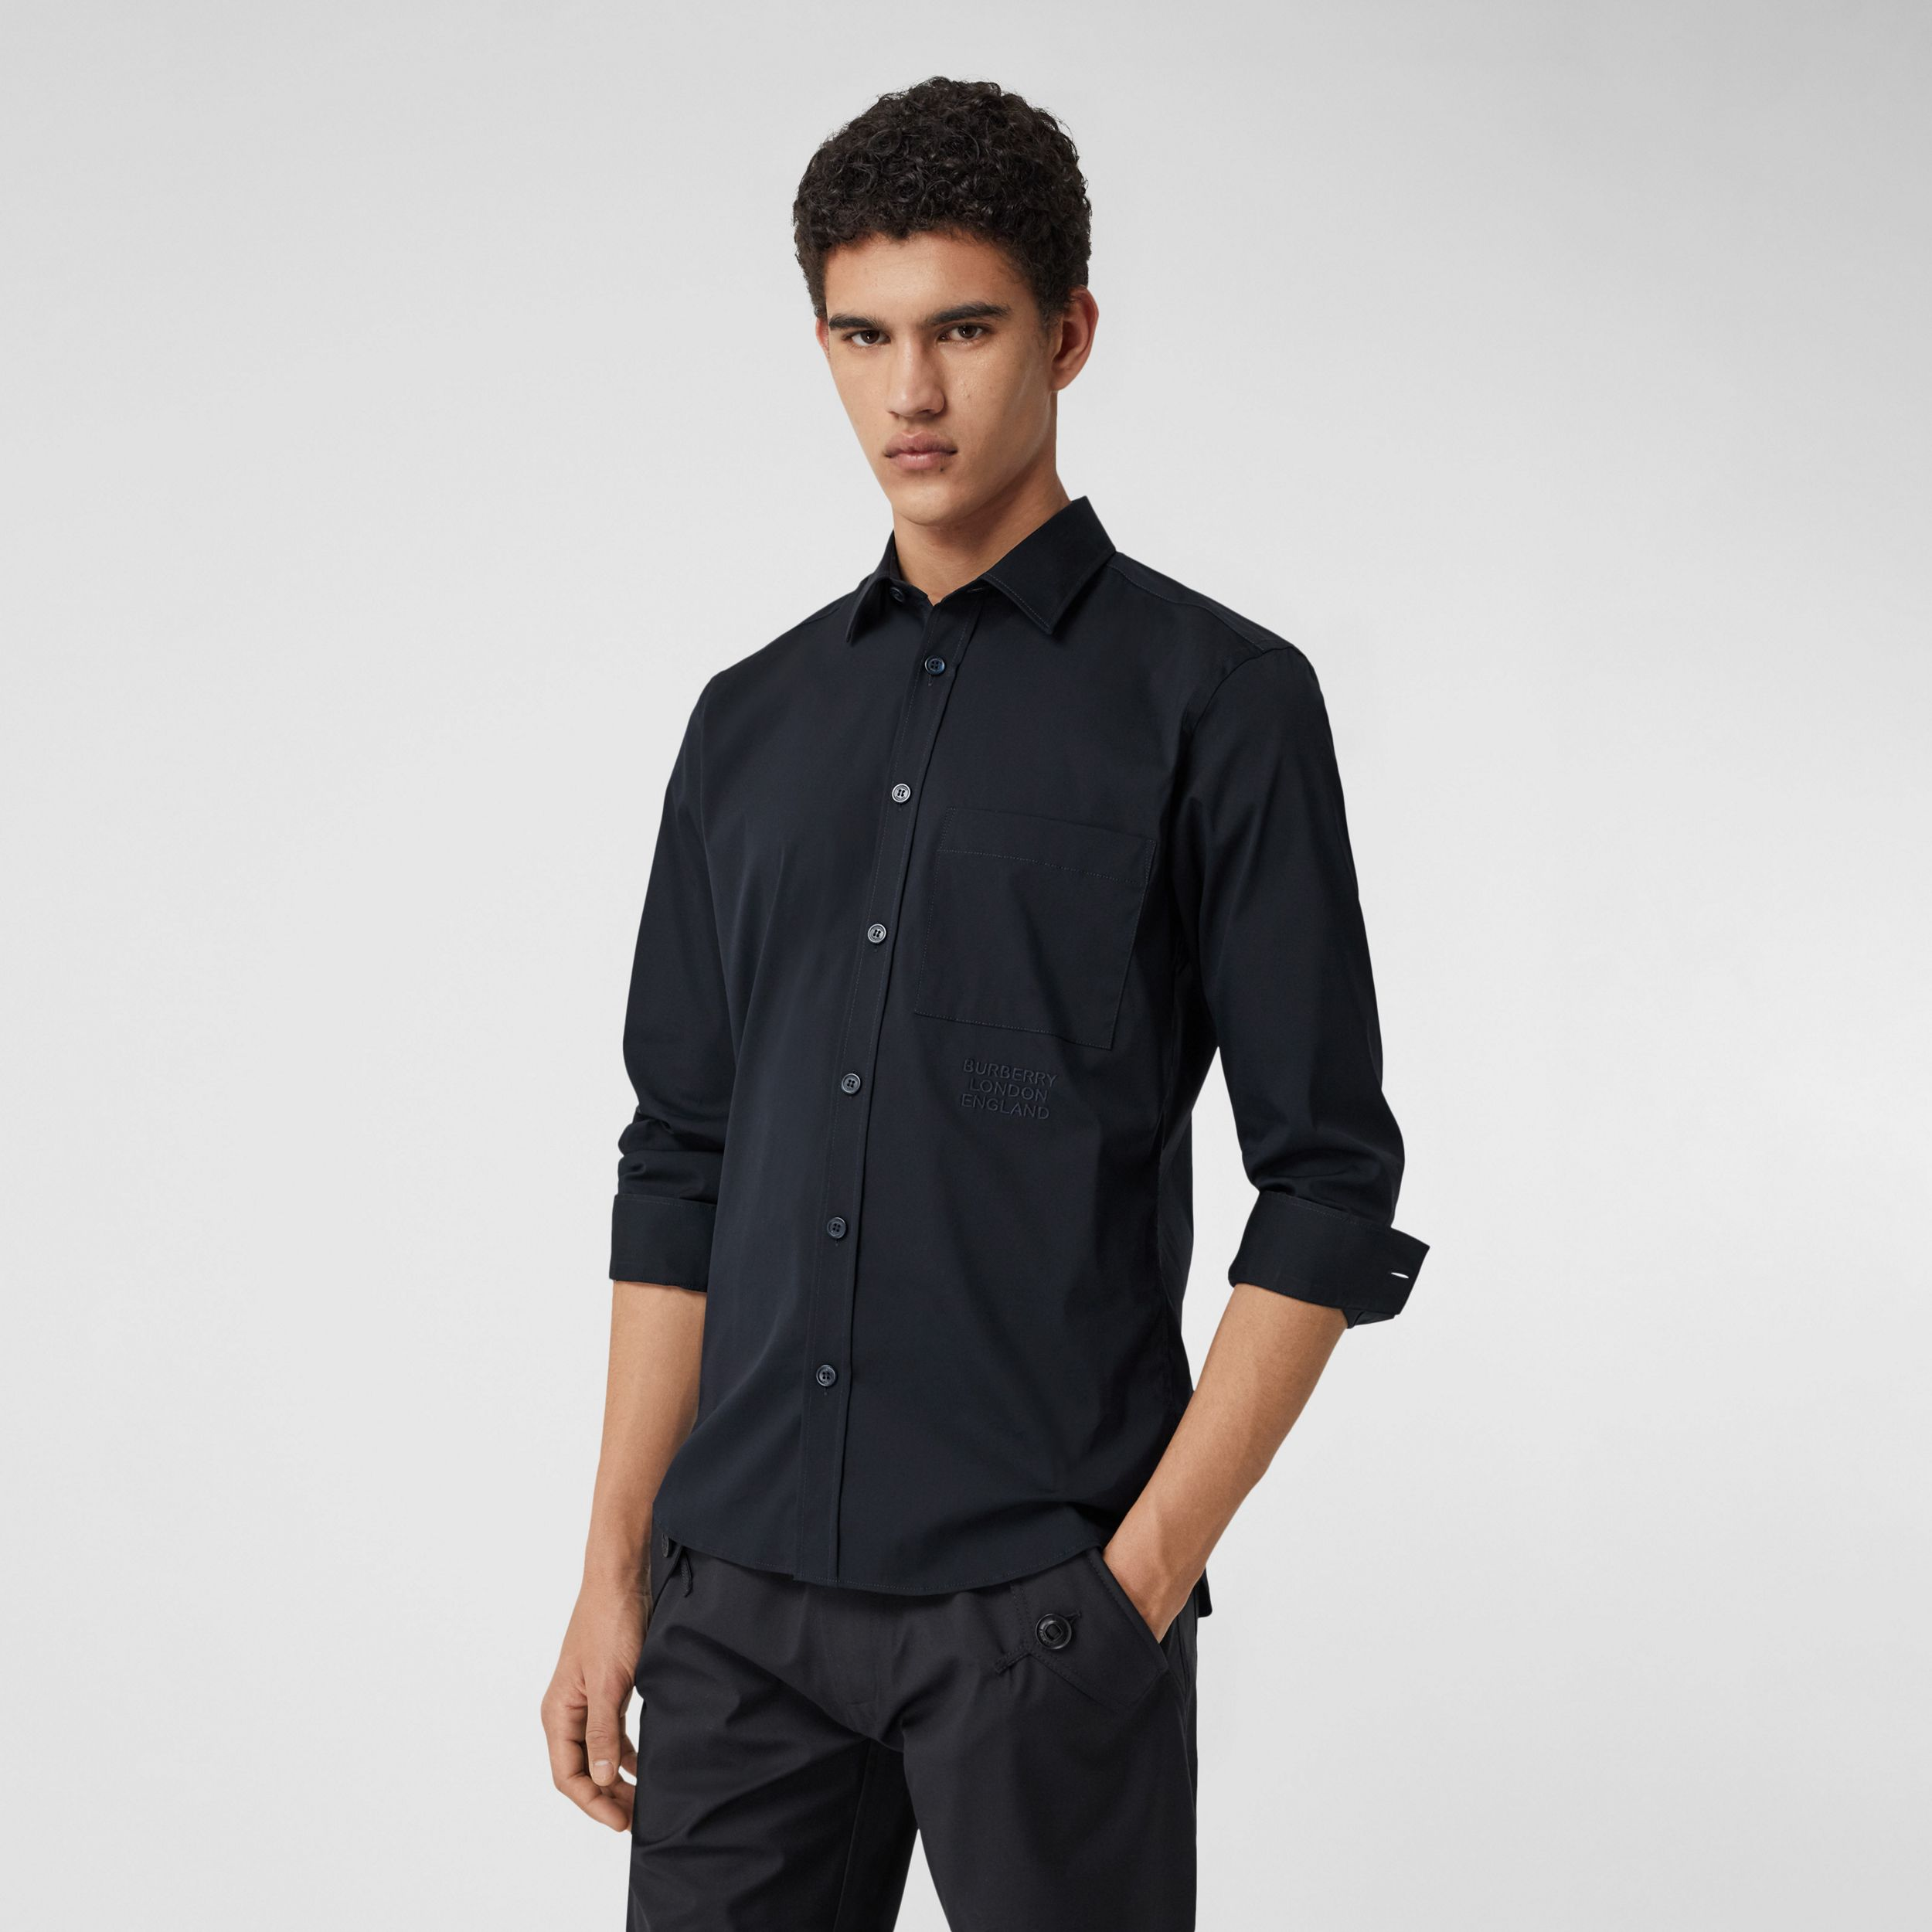 Embroidered Logo Cotton Blend Shirt in Navy - Men | Burberry Hong Kong S.A.R. - 1